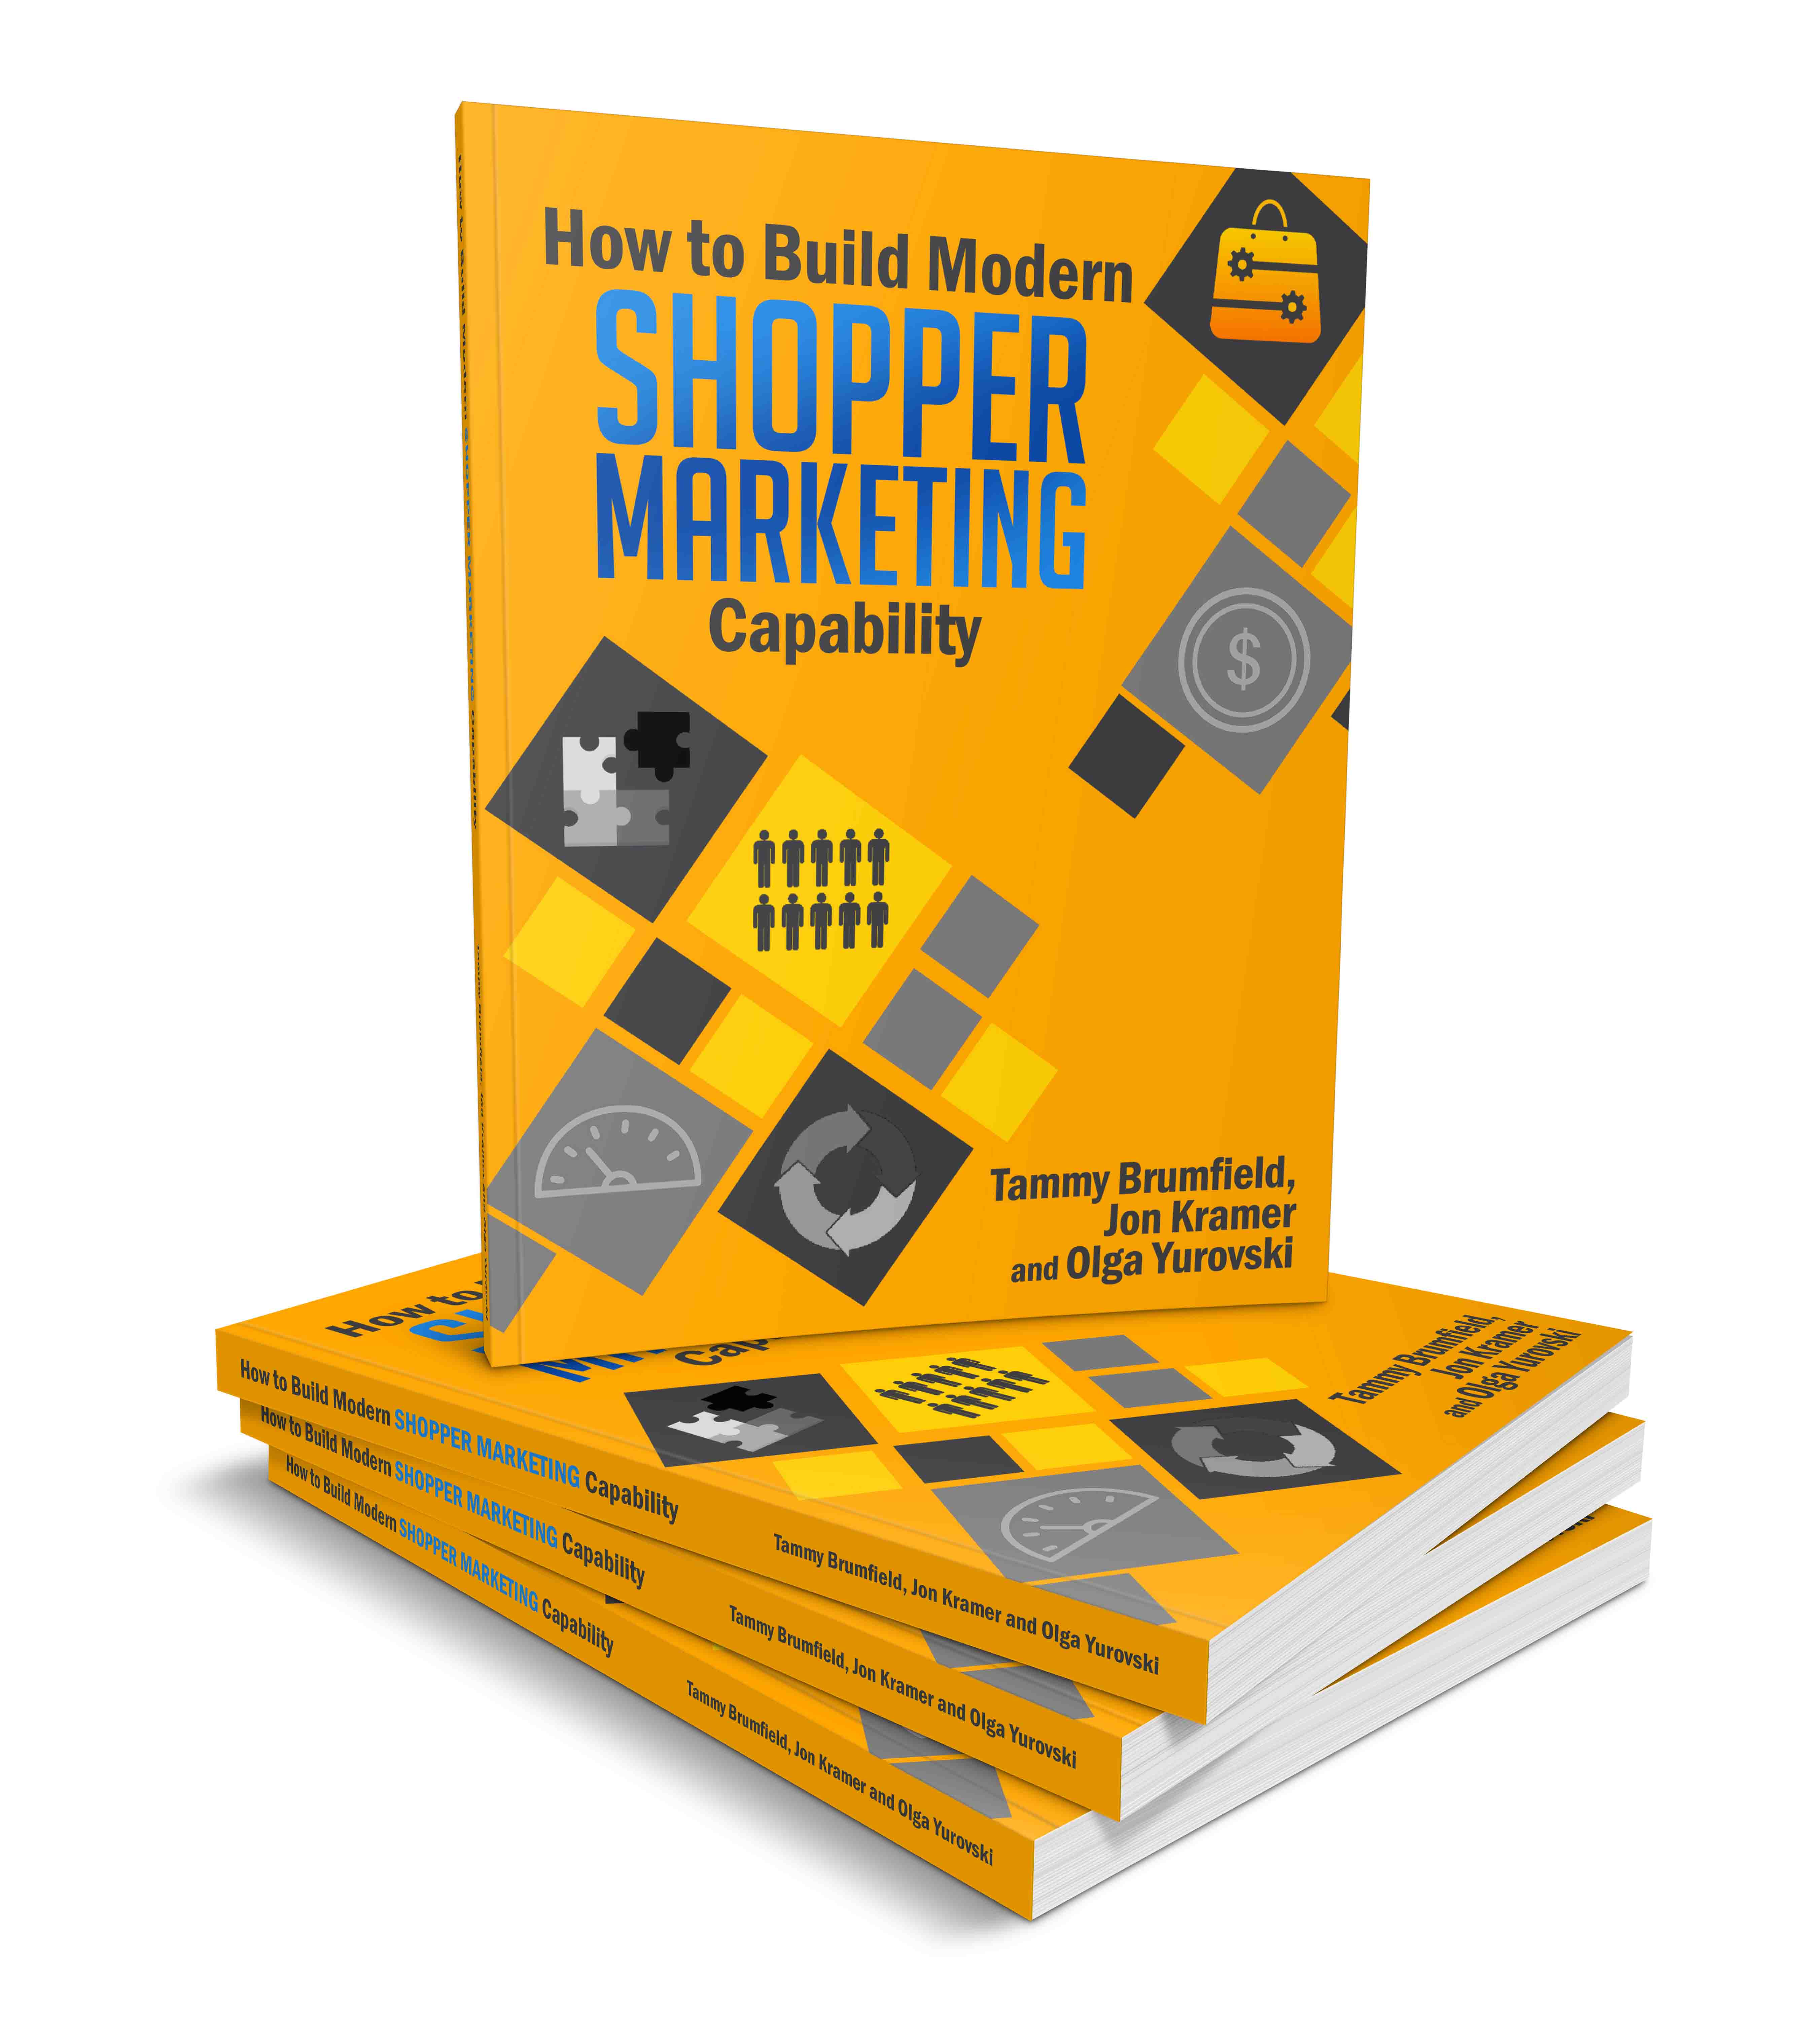 How to build modern Shopper Marketing capability